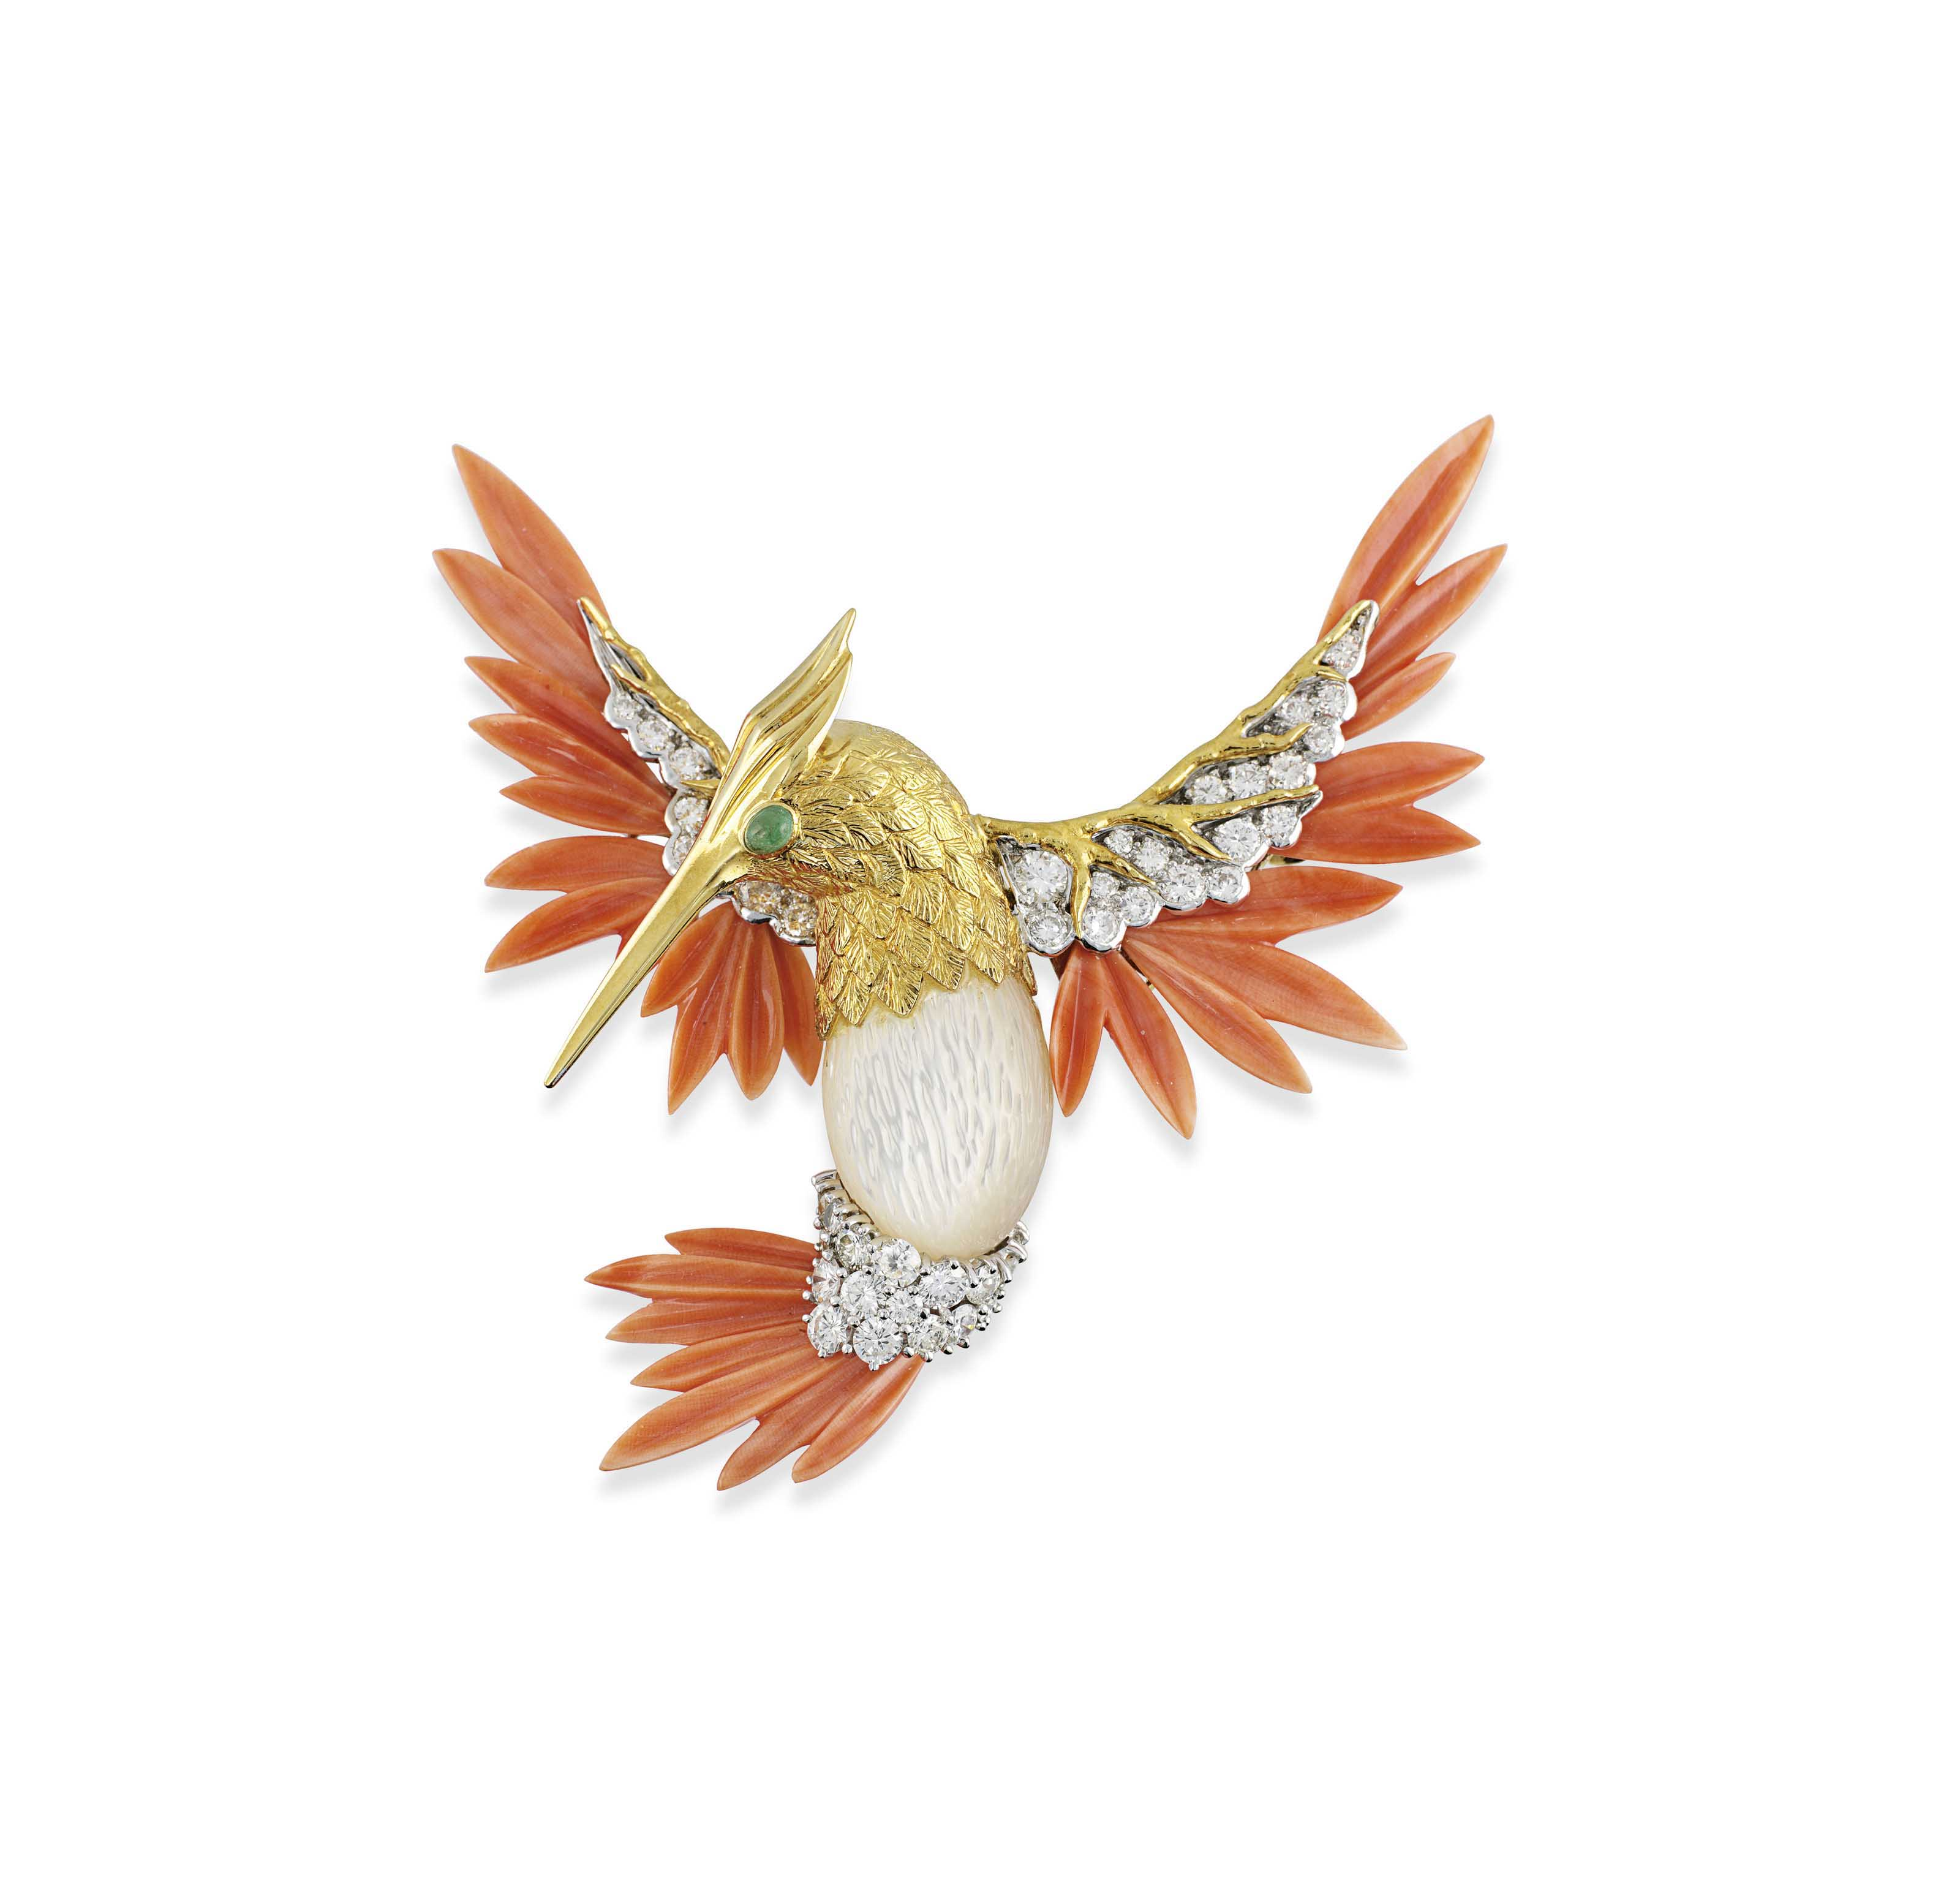 AN 18CT GOLD, CORAL, MOTHER-OF-PEARL AND DIAMOND HUMMINGBIRD BROOCH, BY...